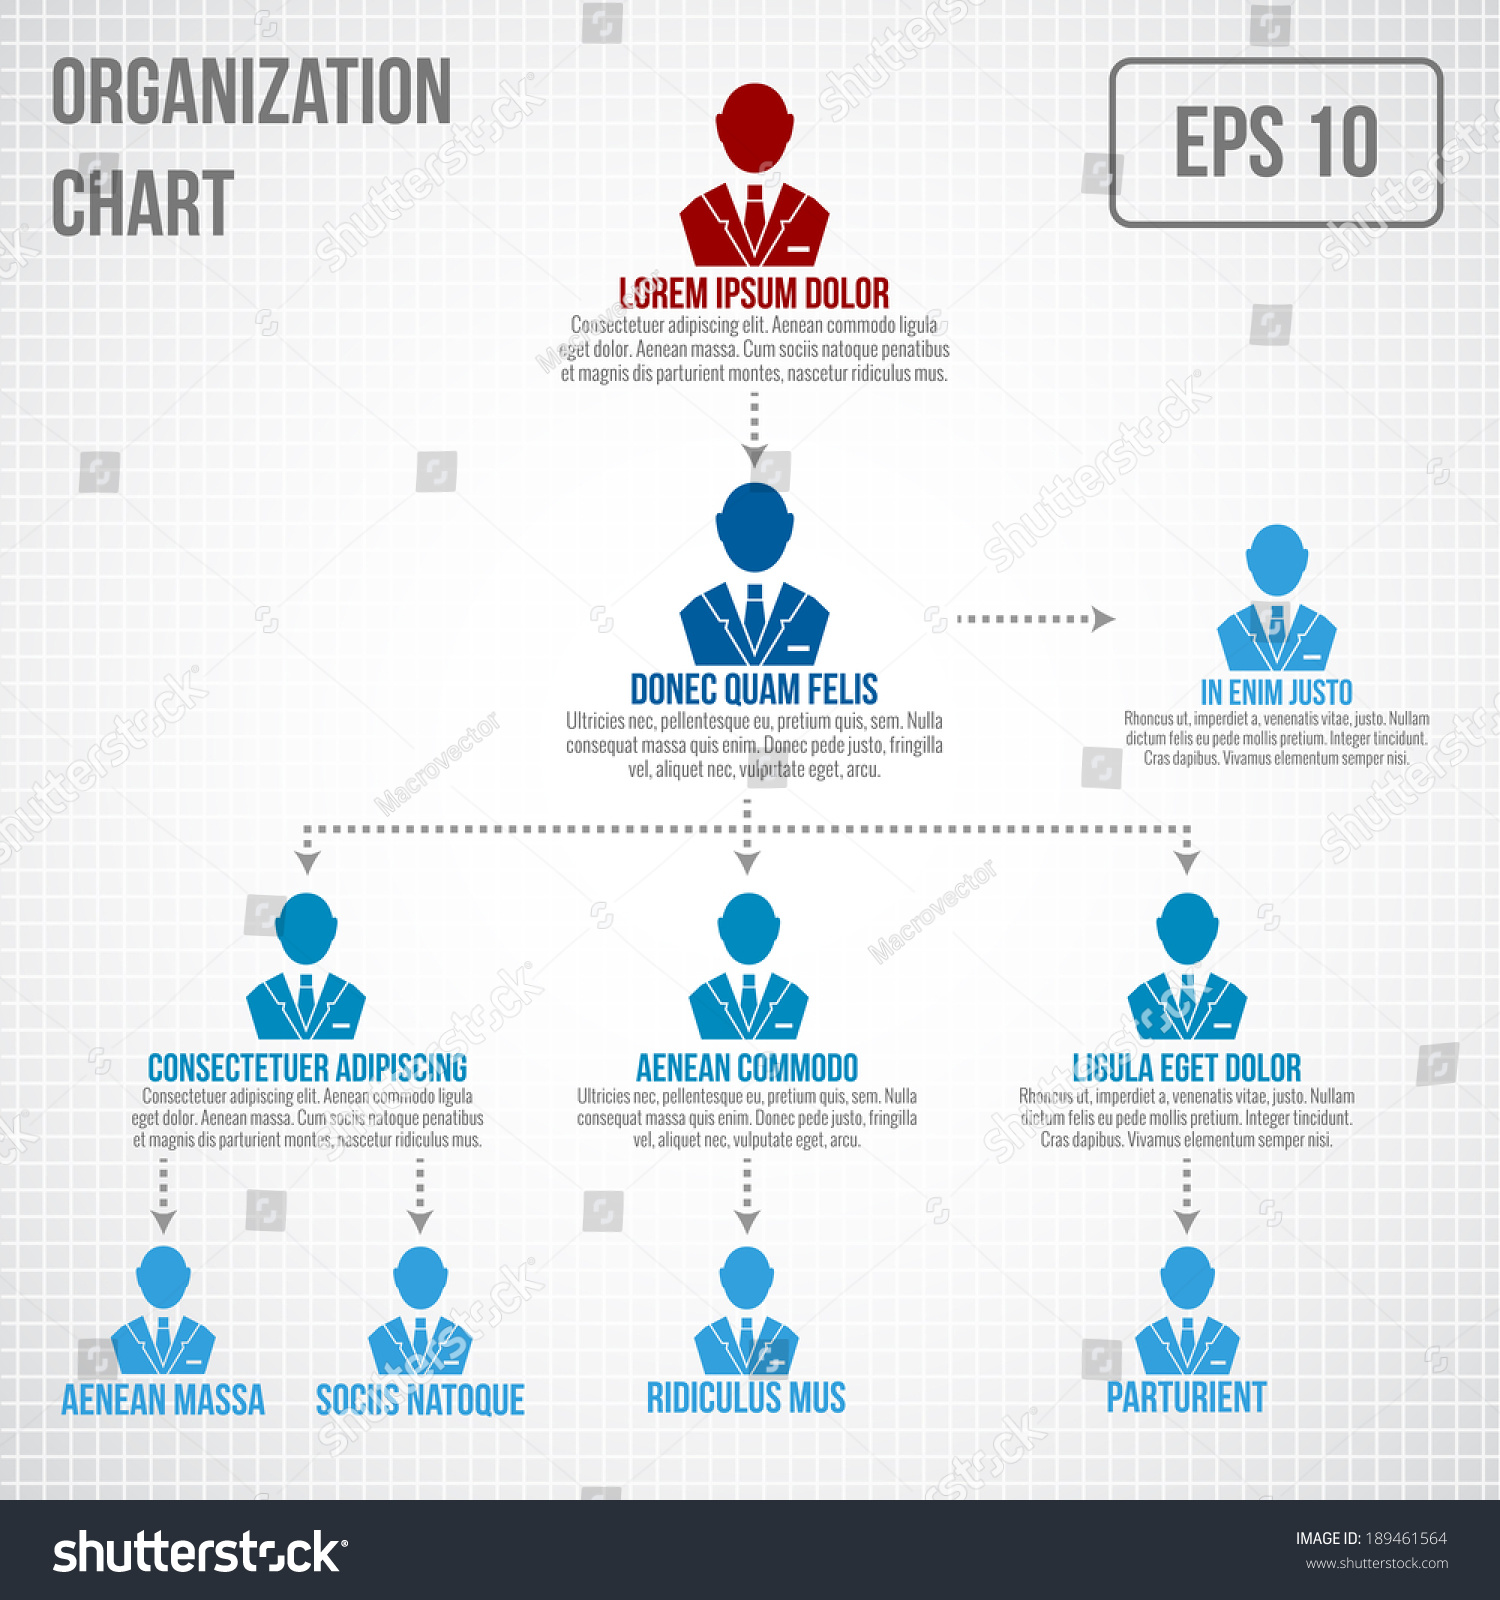 Organisational Chart Infographic Business Hierarchy Boss Stock ...